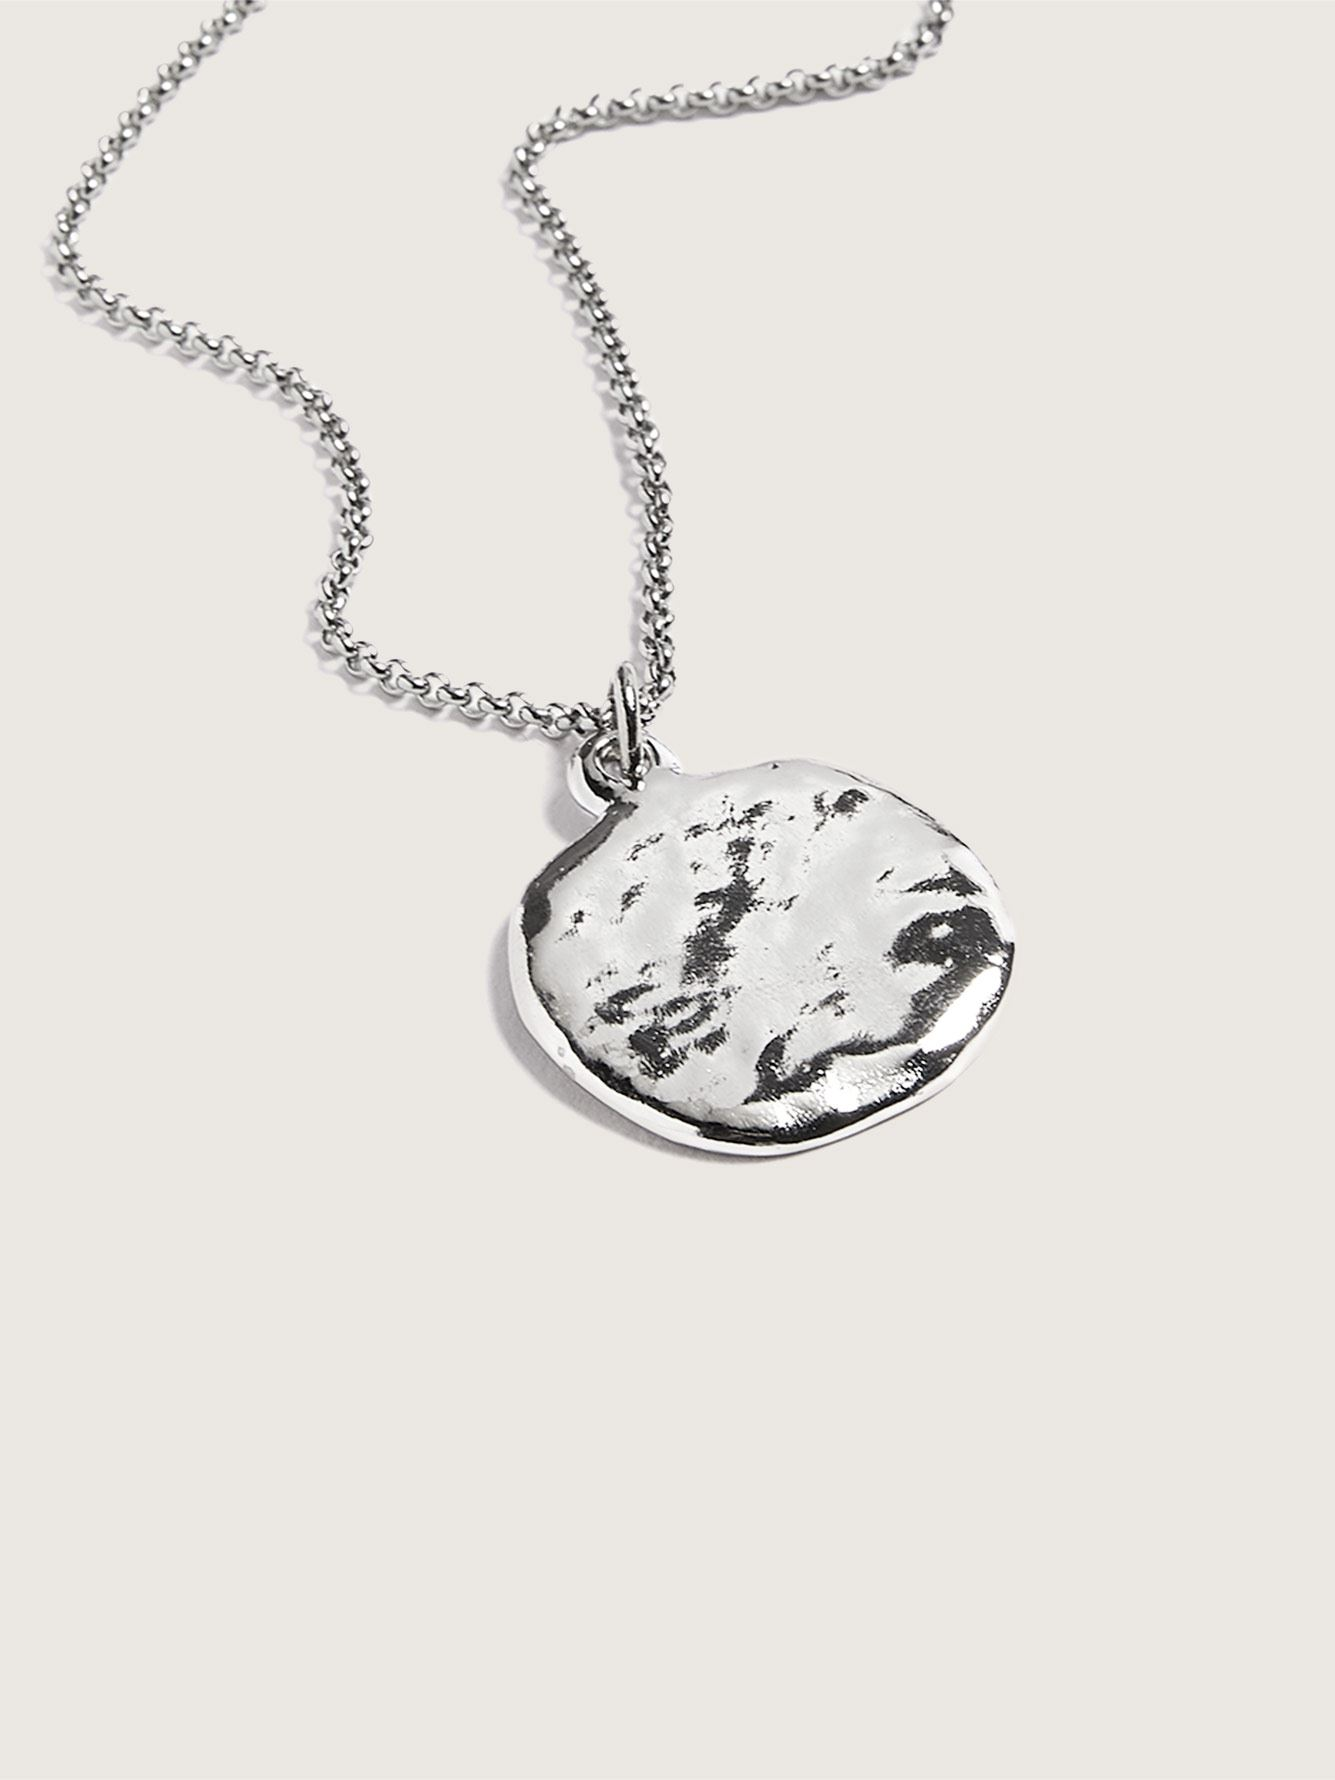 Rhodium Plated Moonwalk Pendant Necklace - Biko